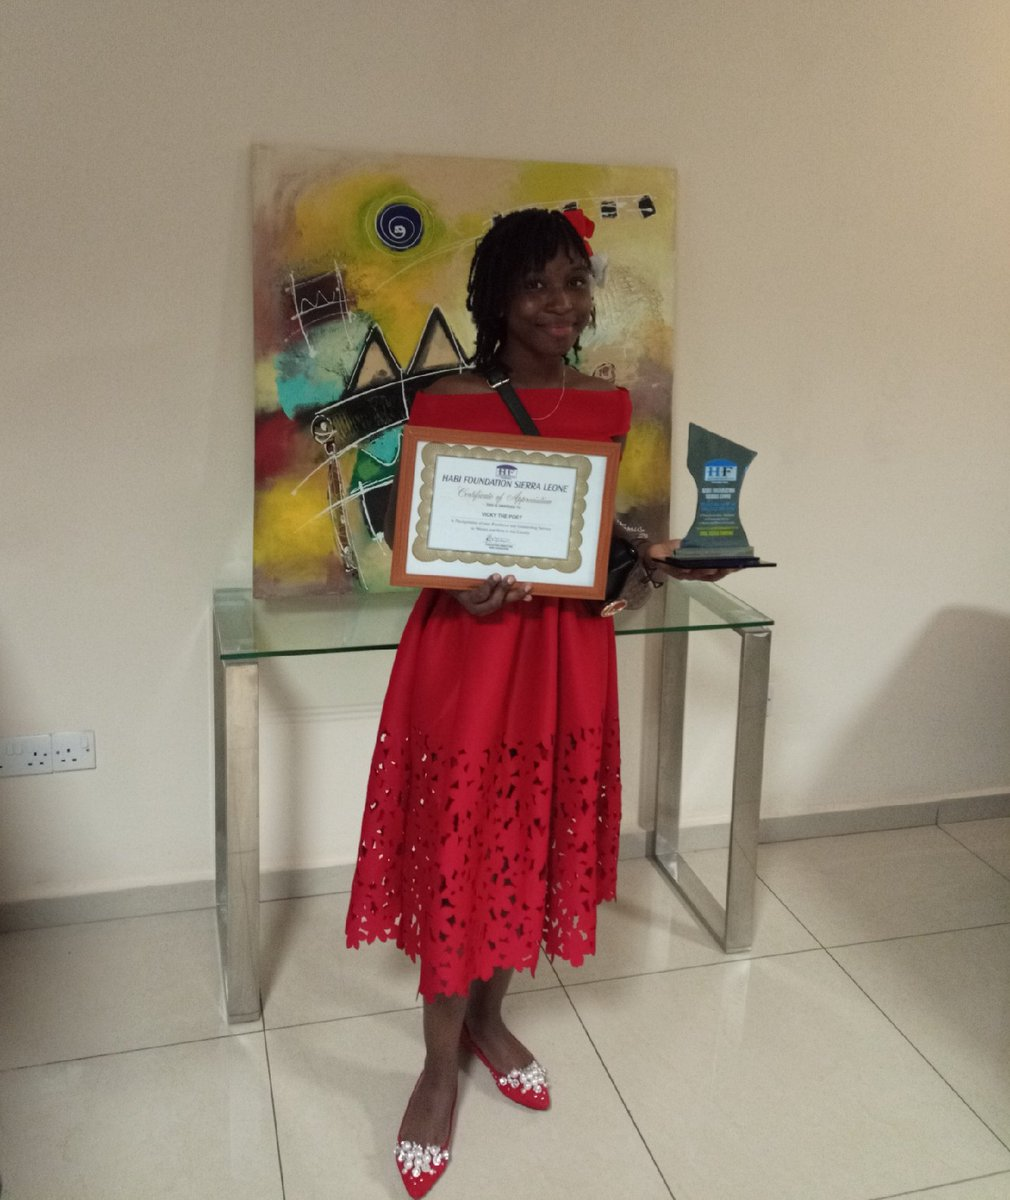 """Today I was awarded for excellence and outstanding, service to women and girls in Sierra Leone by Habi Foundation   I dedicate this award to girls across Africa and beyond """"My voice, our equal future""""  #IDGC2020 https://t.co/yfinX1xUuz"""